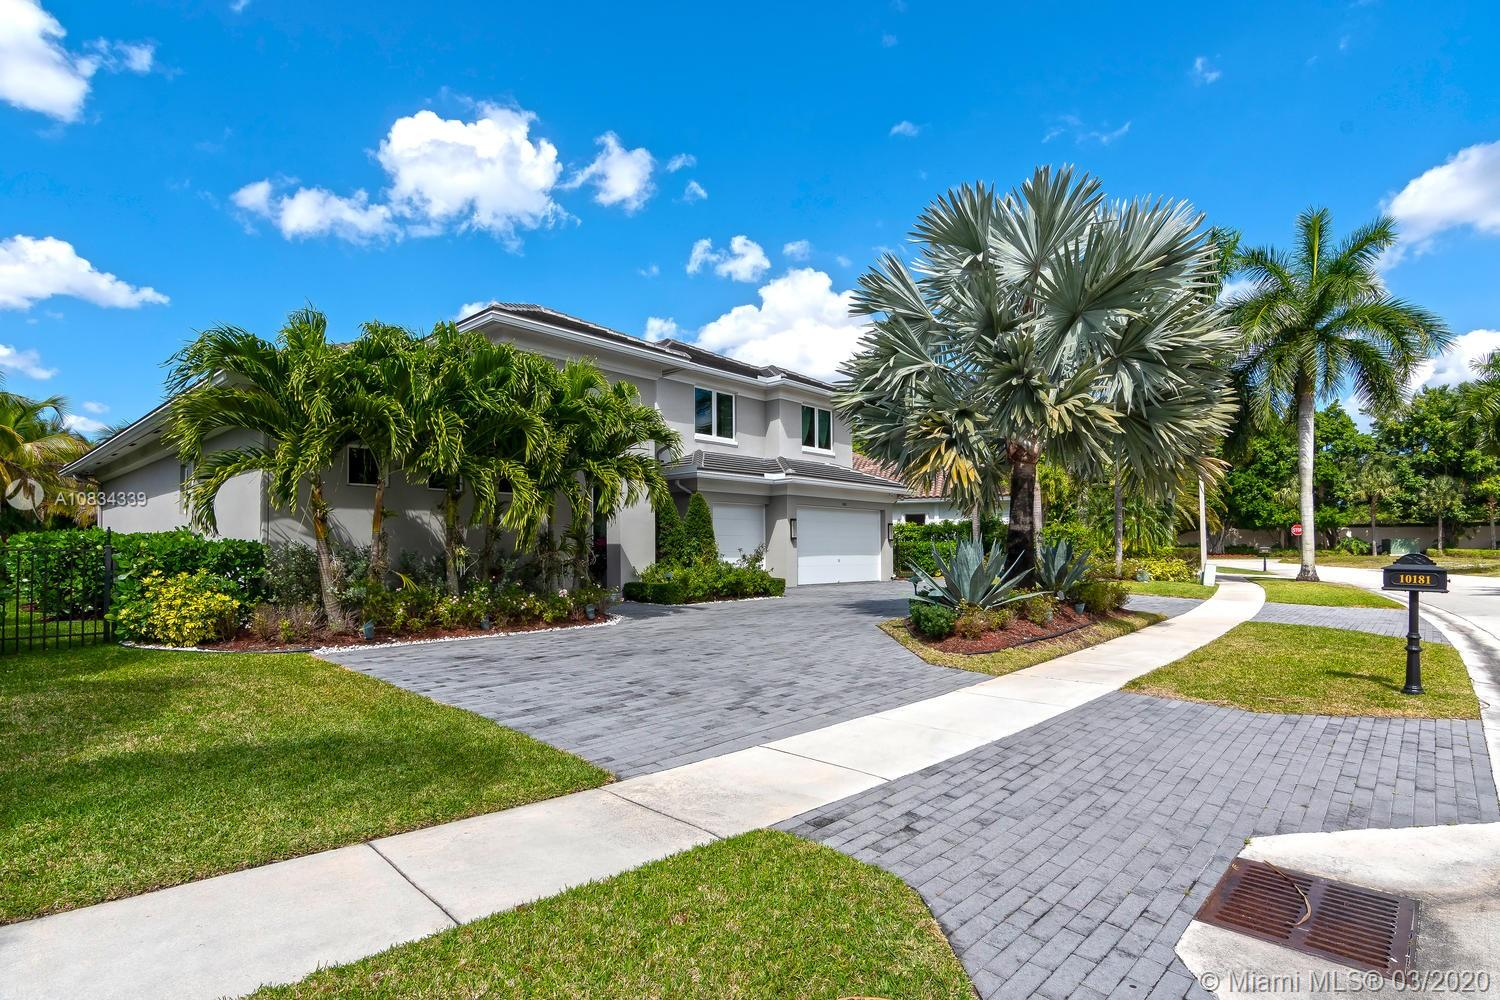 10181 Key Plum St, Plantation, FL 33324